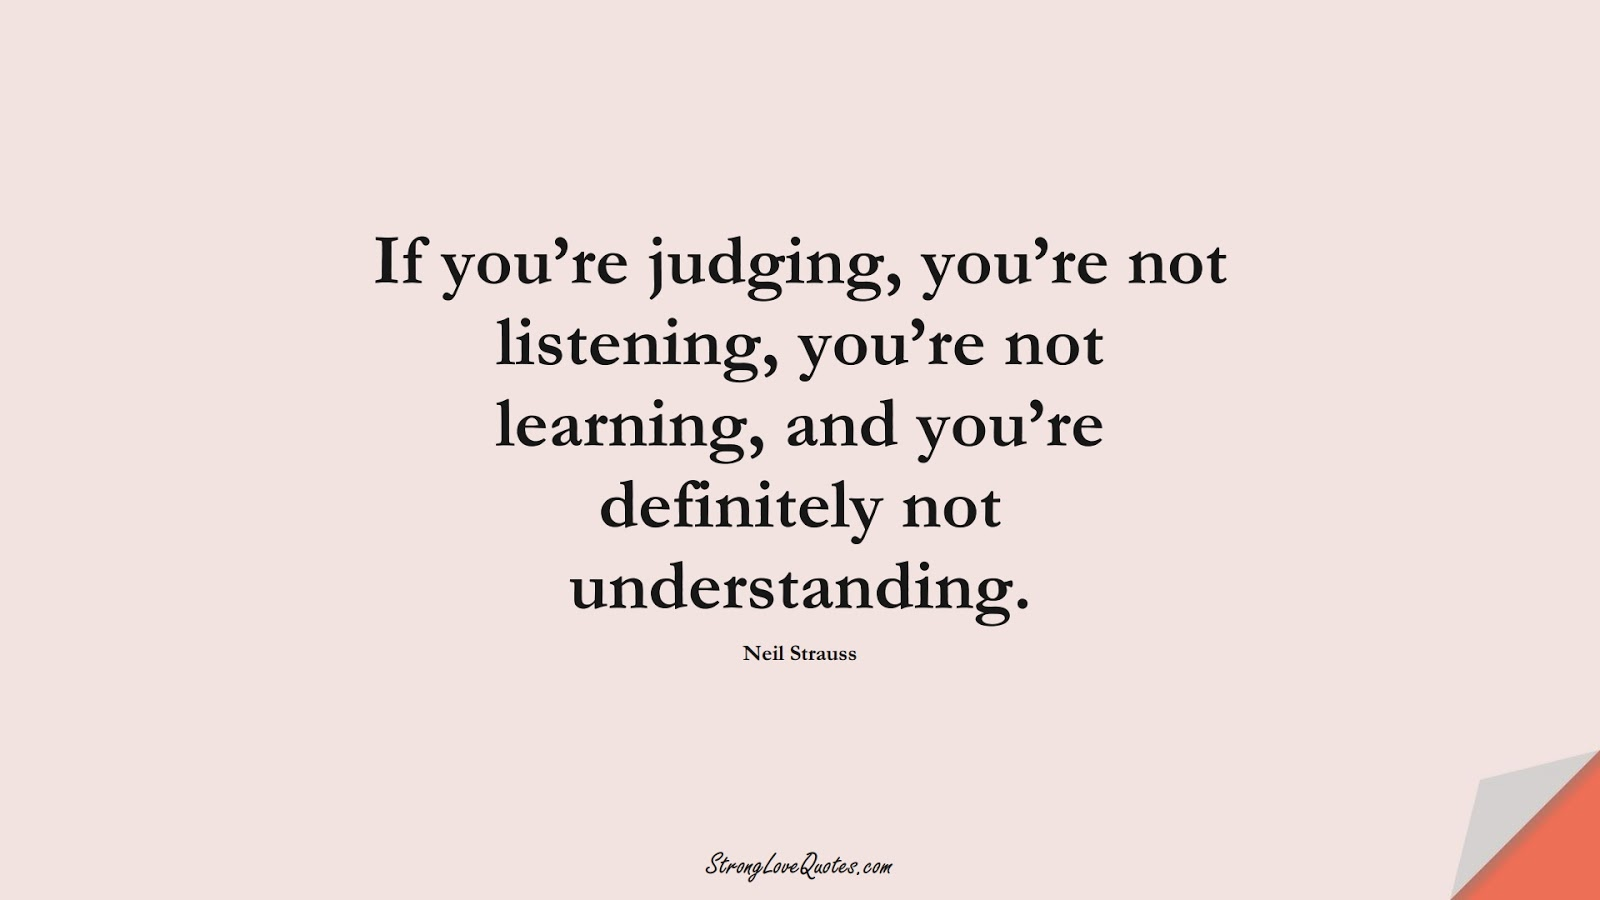 If you're judging, you're not listening, you're not learning, and you're definitely not understanding. (Neil Strauss);  #LearningQuotes